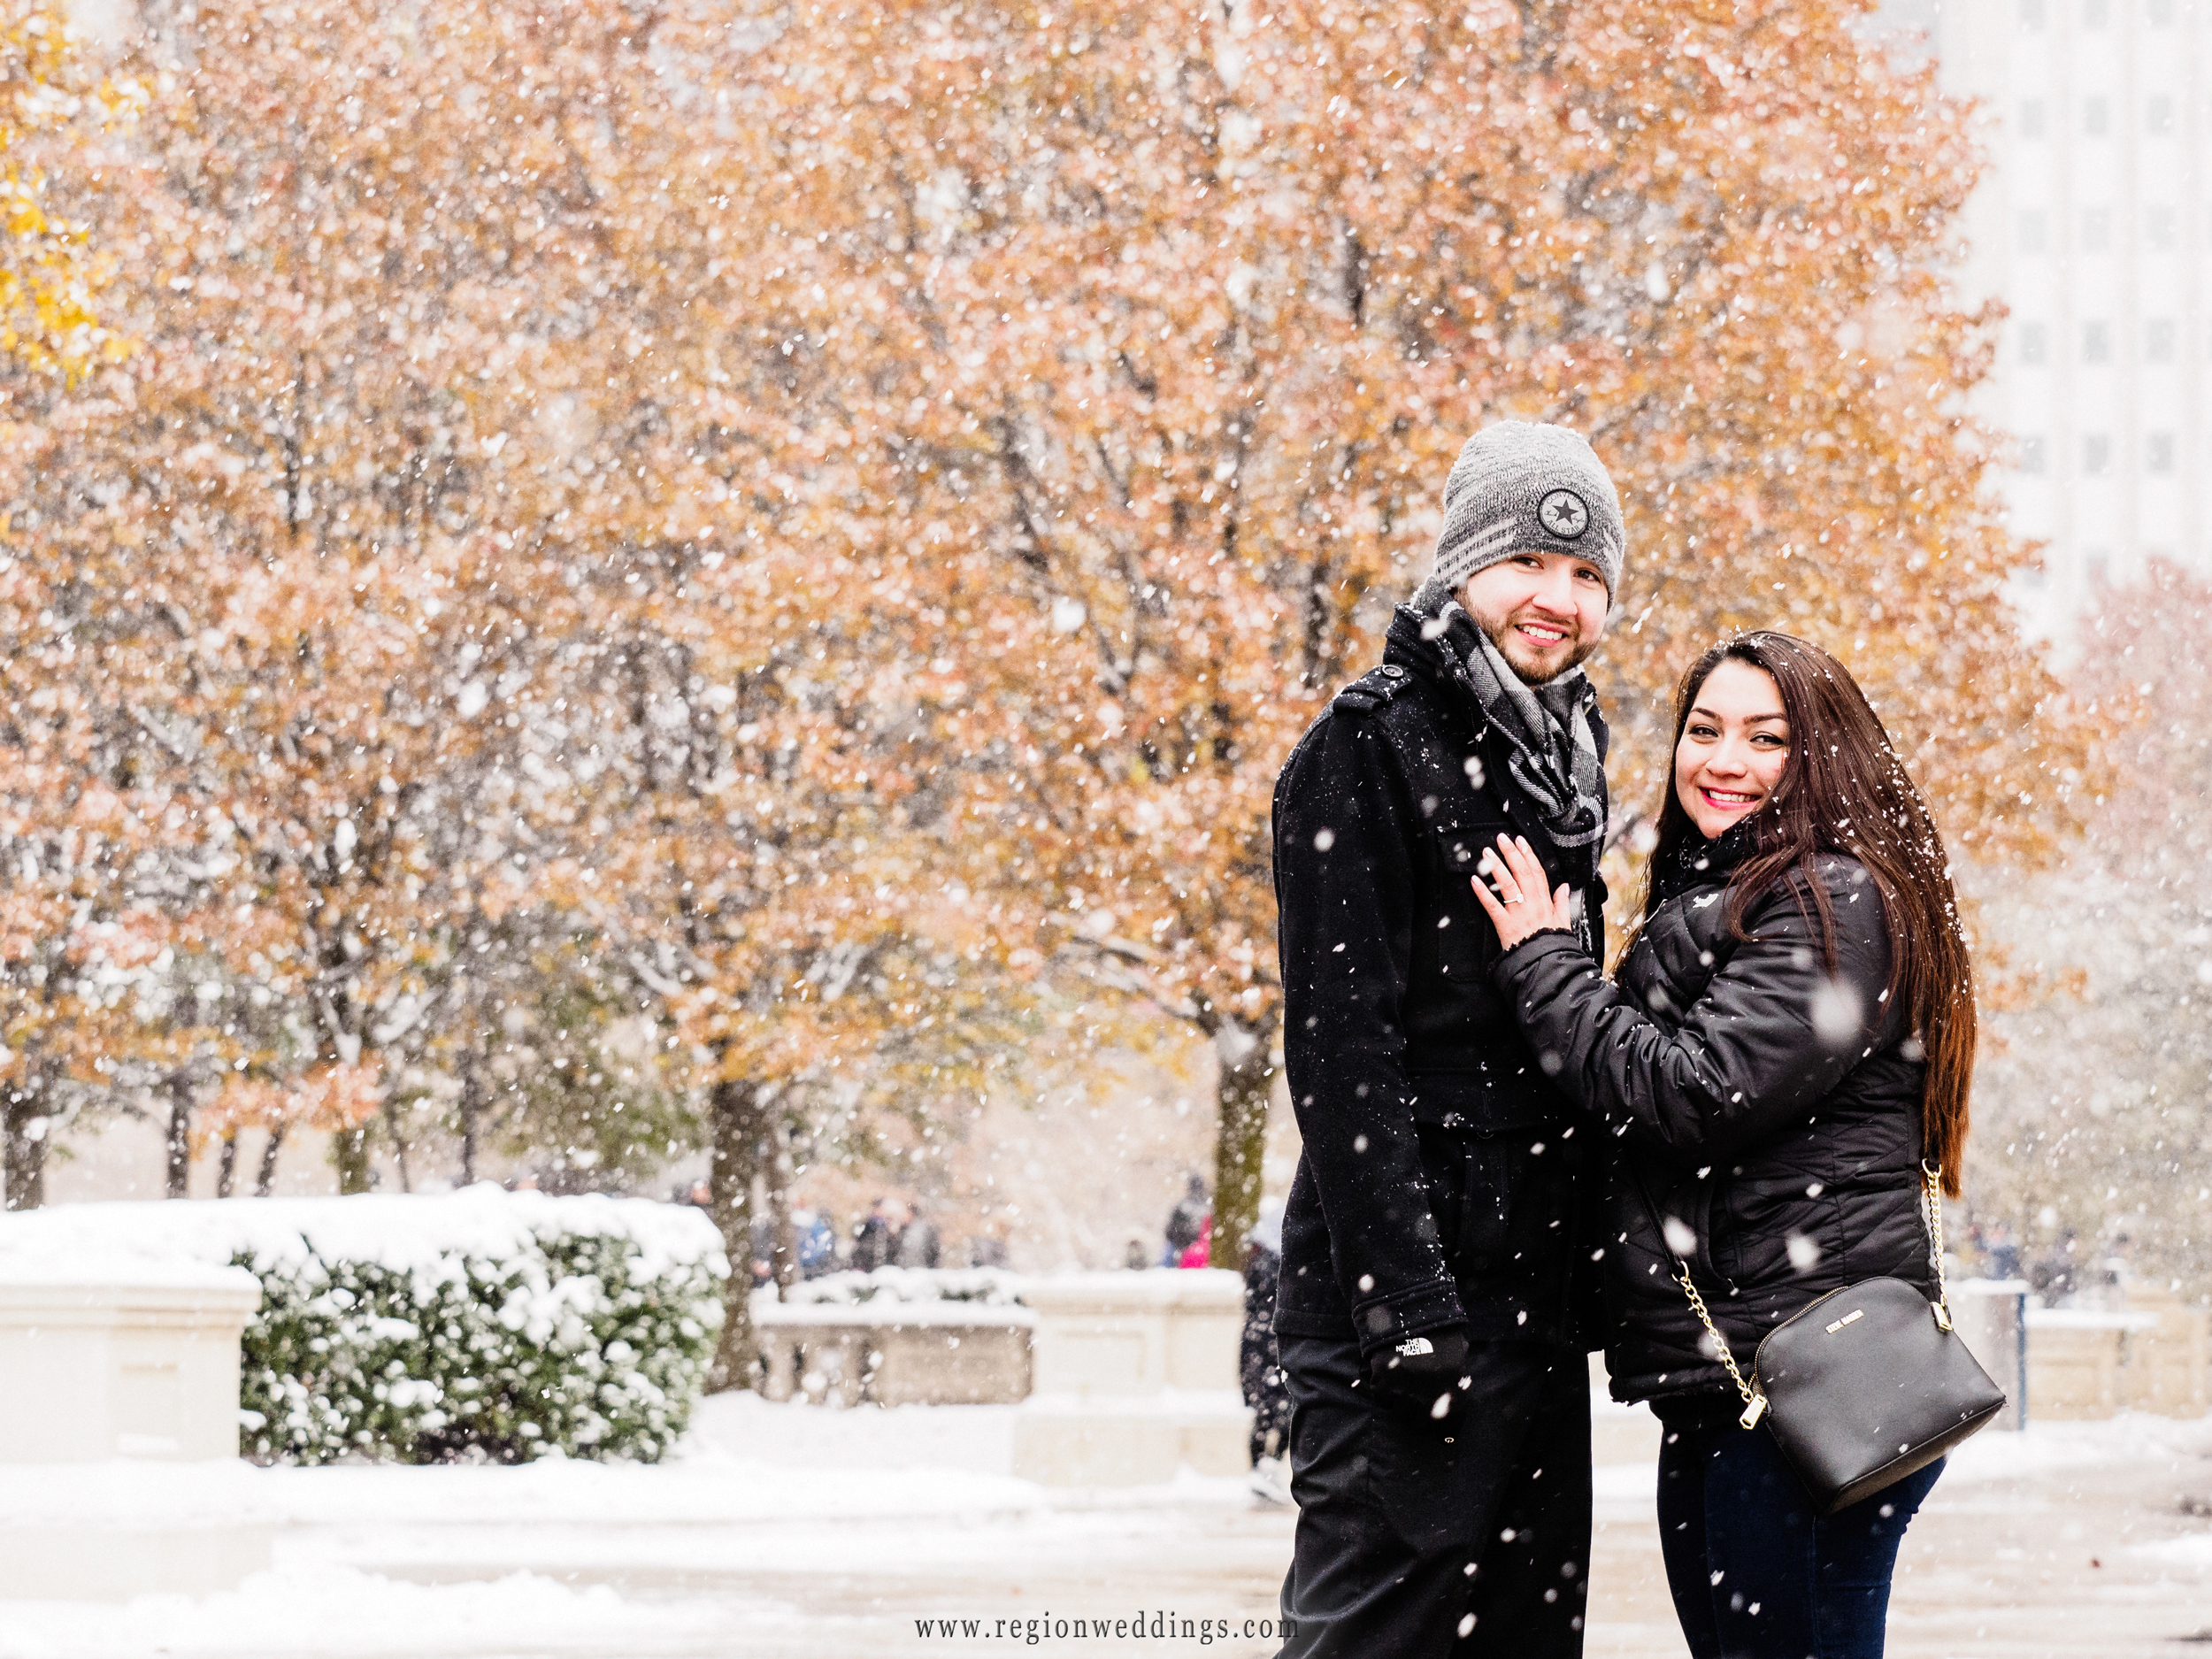 Winter engagement photo in downtown Chicago.